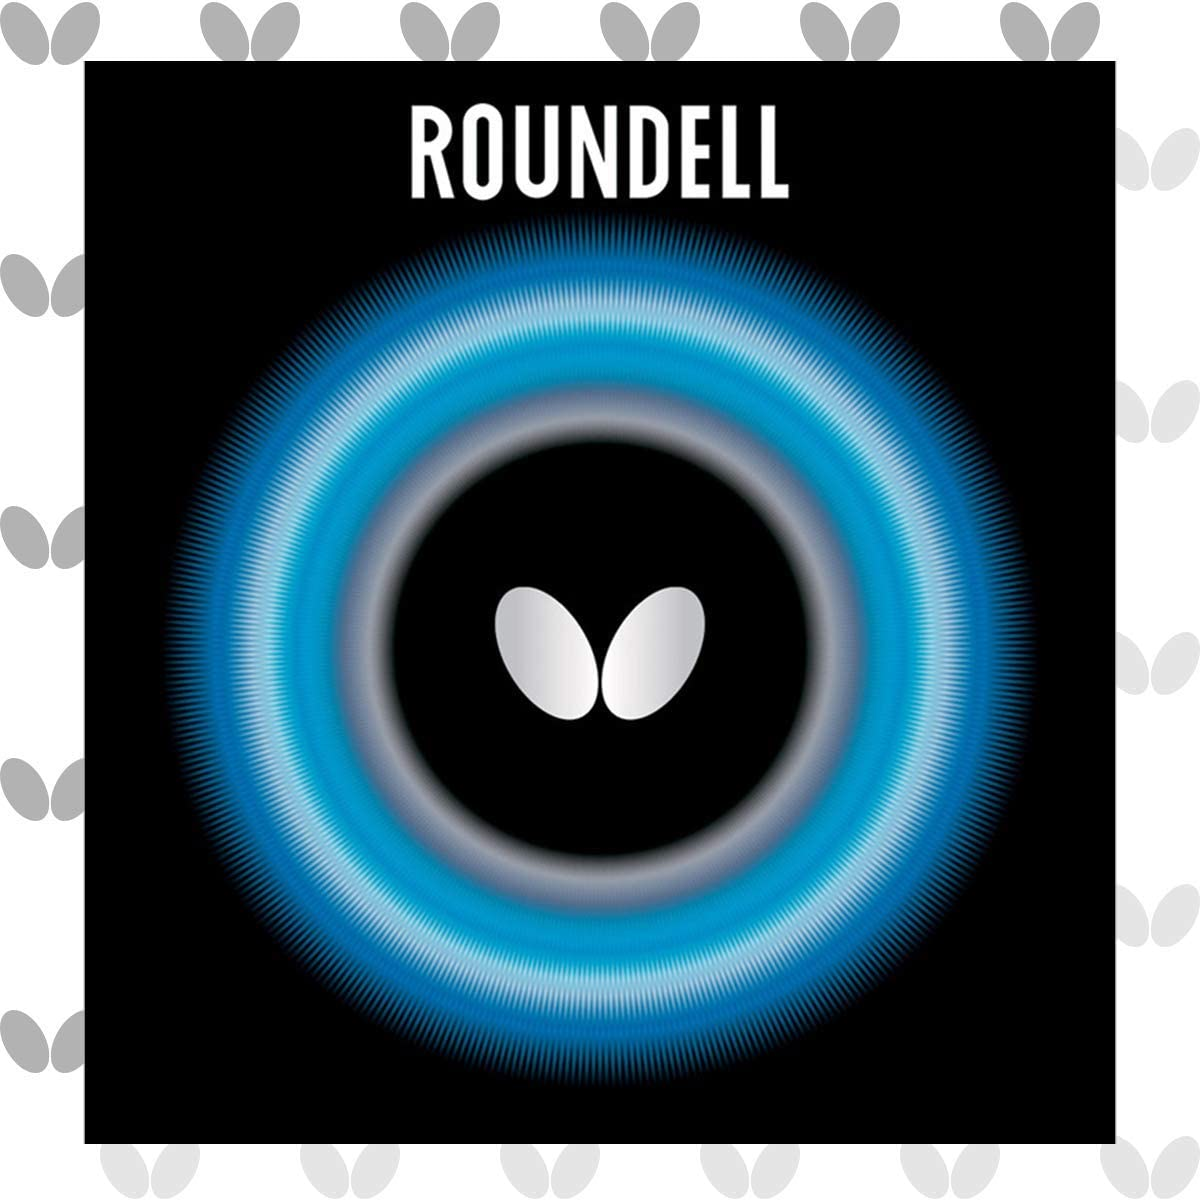 Butterfly Roundell Table Tennis Rubber Sheet 2.1 or Max 77% OFF - Weekly update 1.9 mm